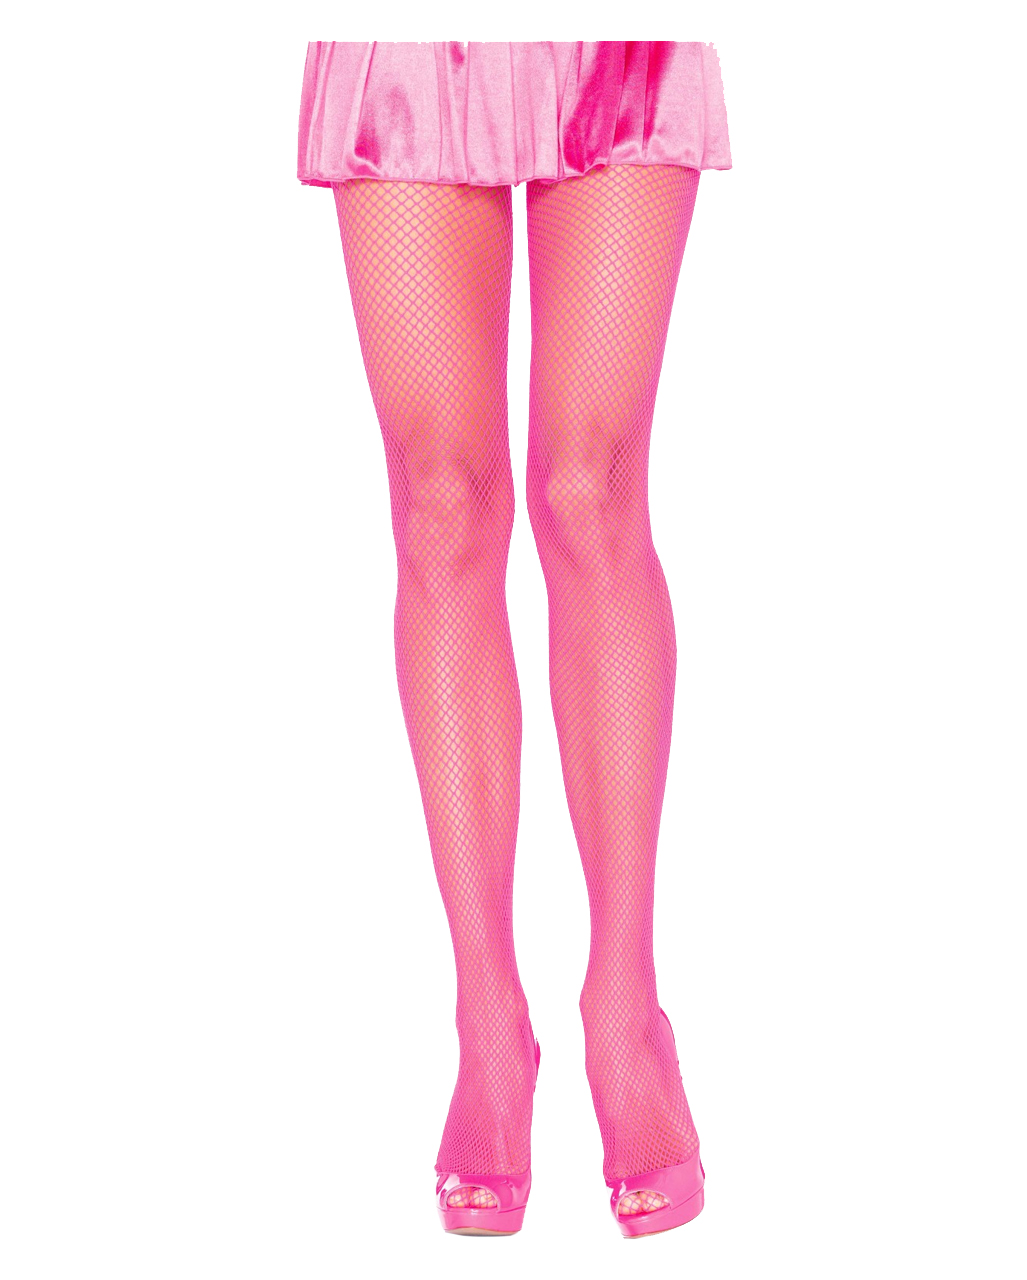 a4fab0220ce83 Neon Pink 80s Fishnet Tights for Bath Button Party | horror-shop.com